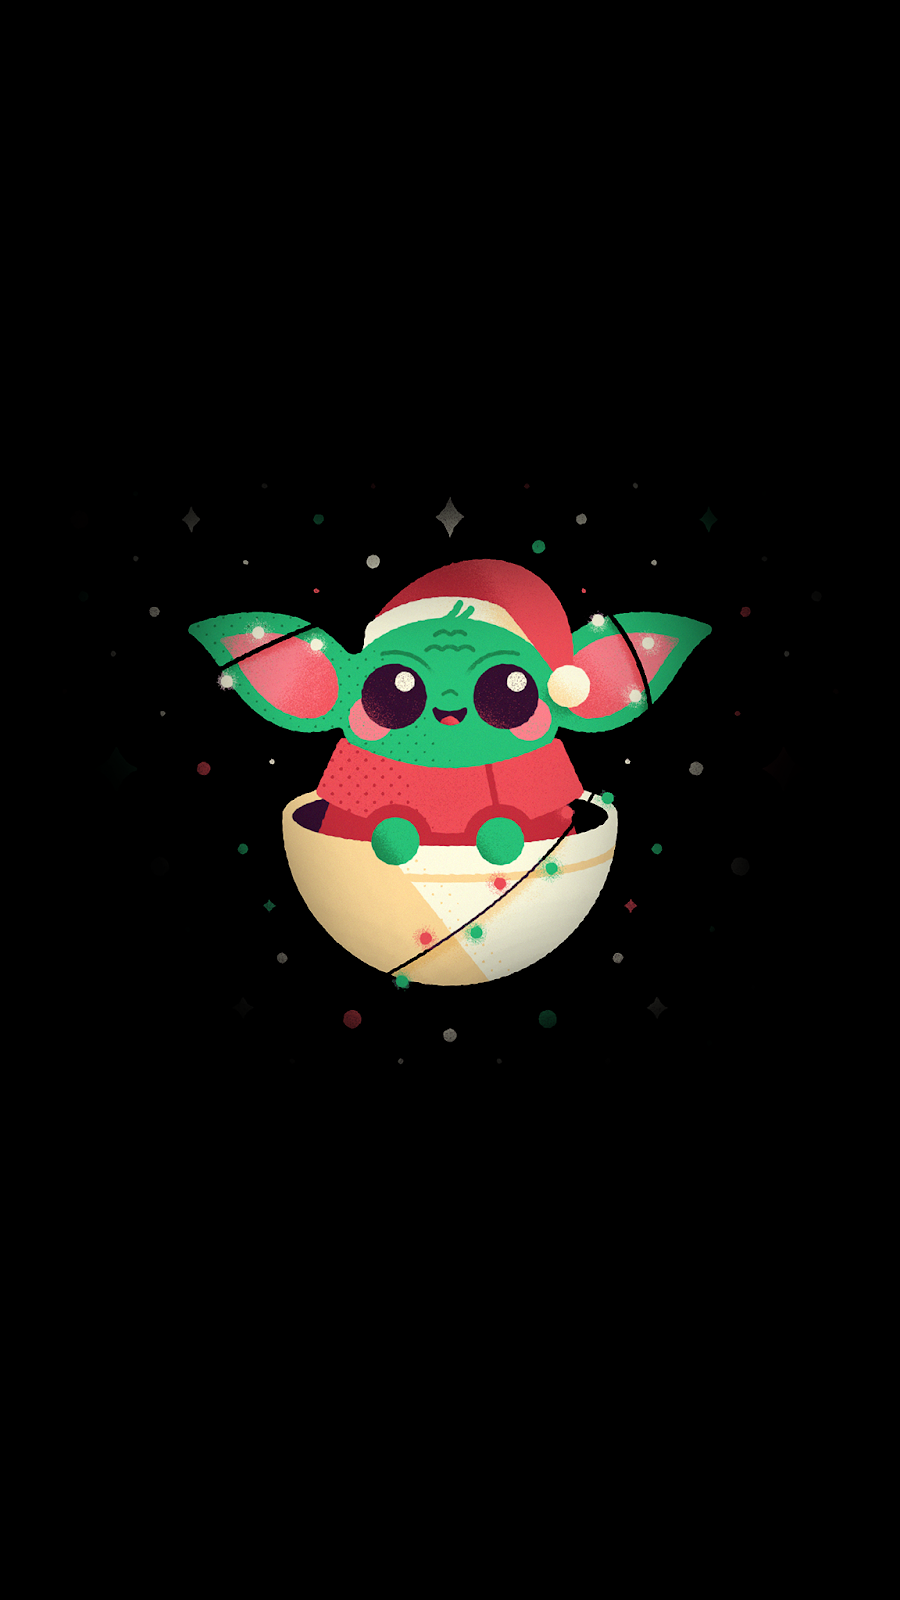 Baby Yoda Wallpapers For Phone Heroscreen Cool Wallpapers